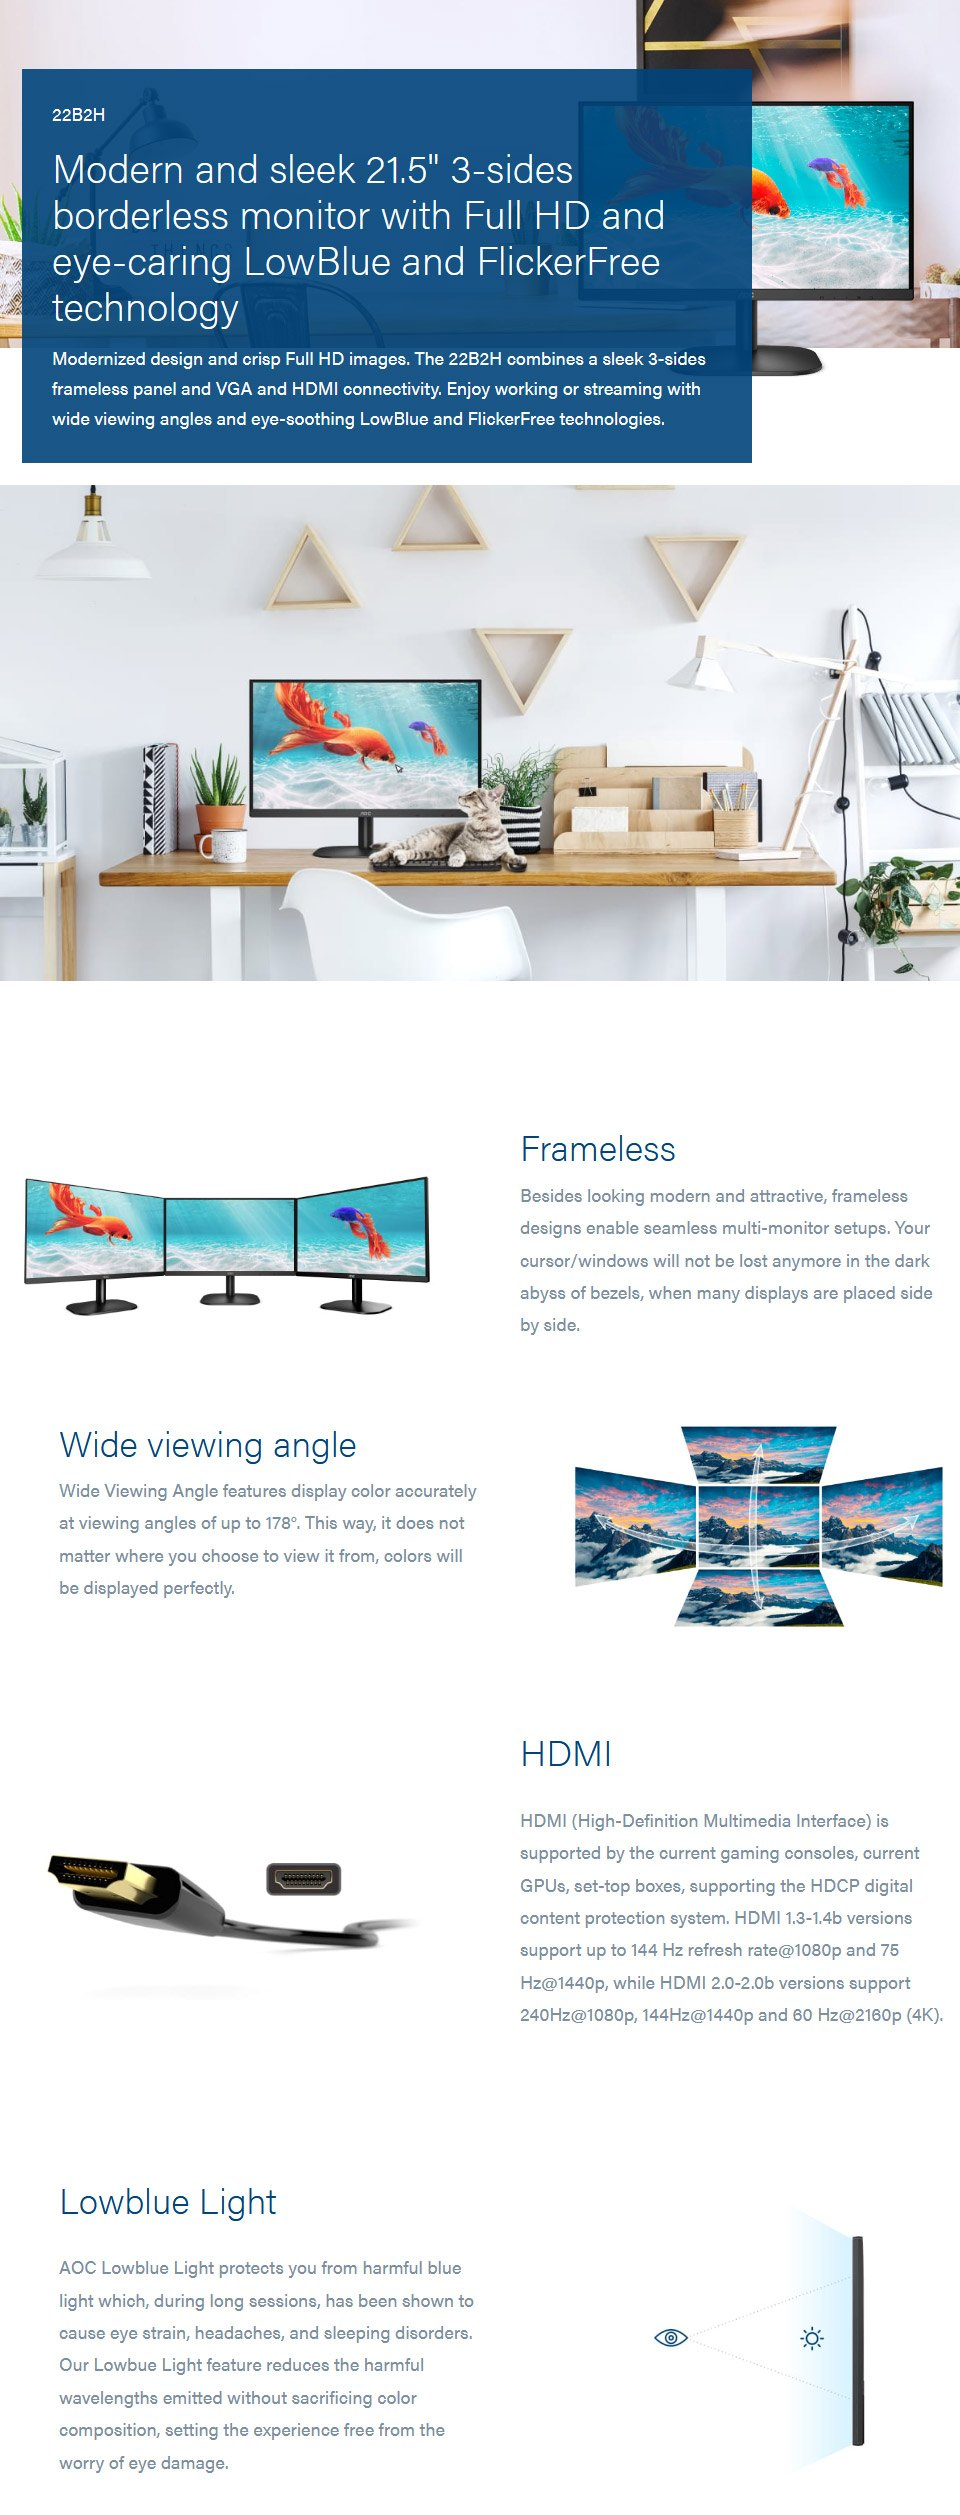 AOC 22B2H FHD 75Hz IPS 21.5in Monitor features